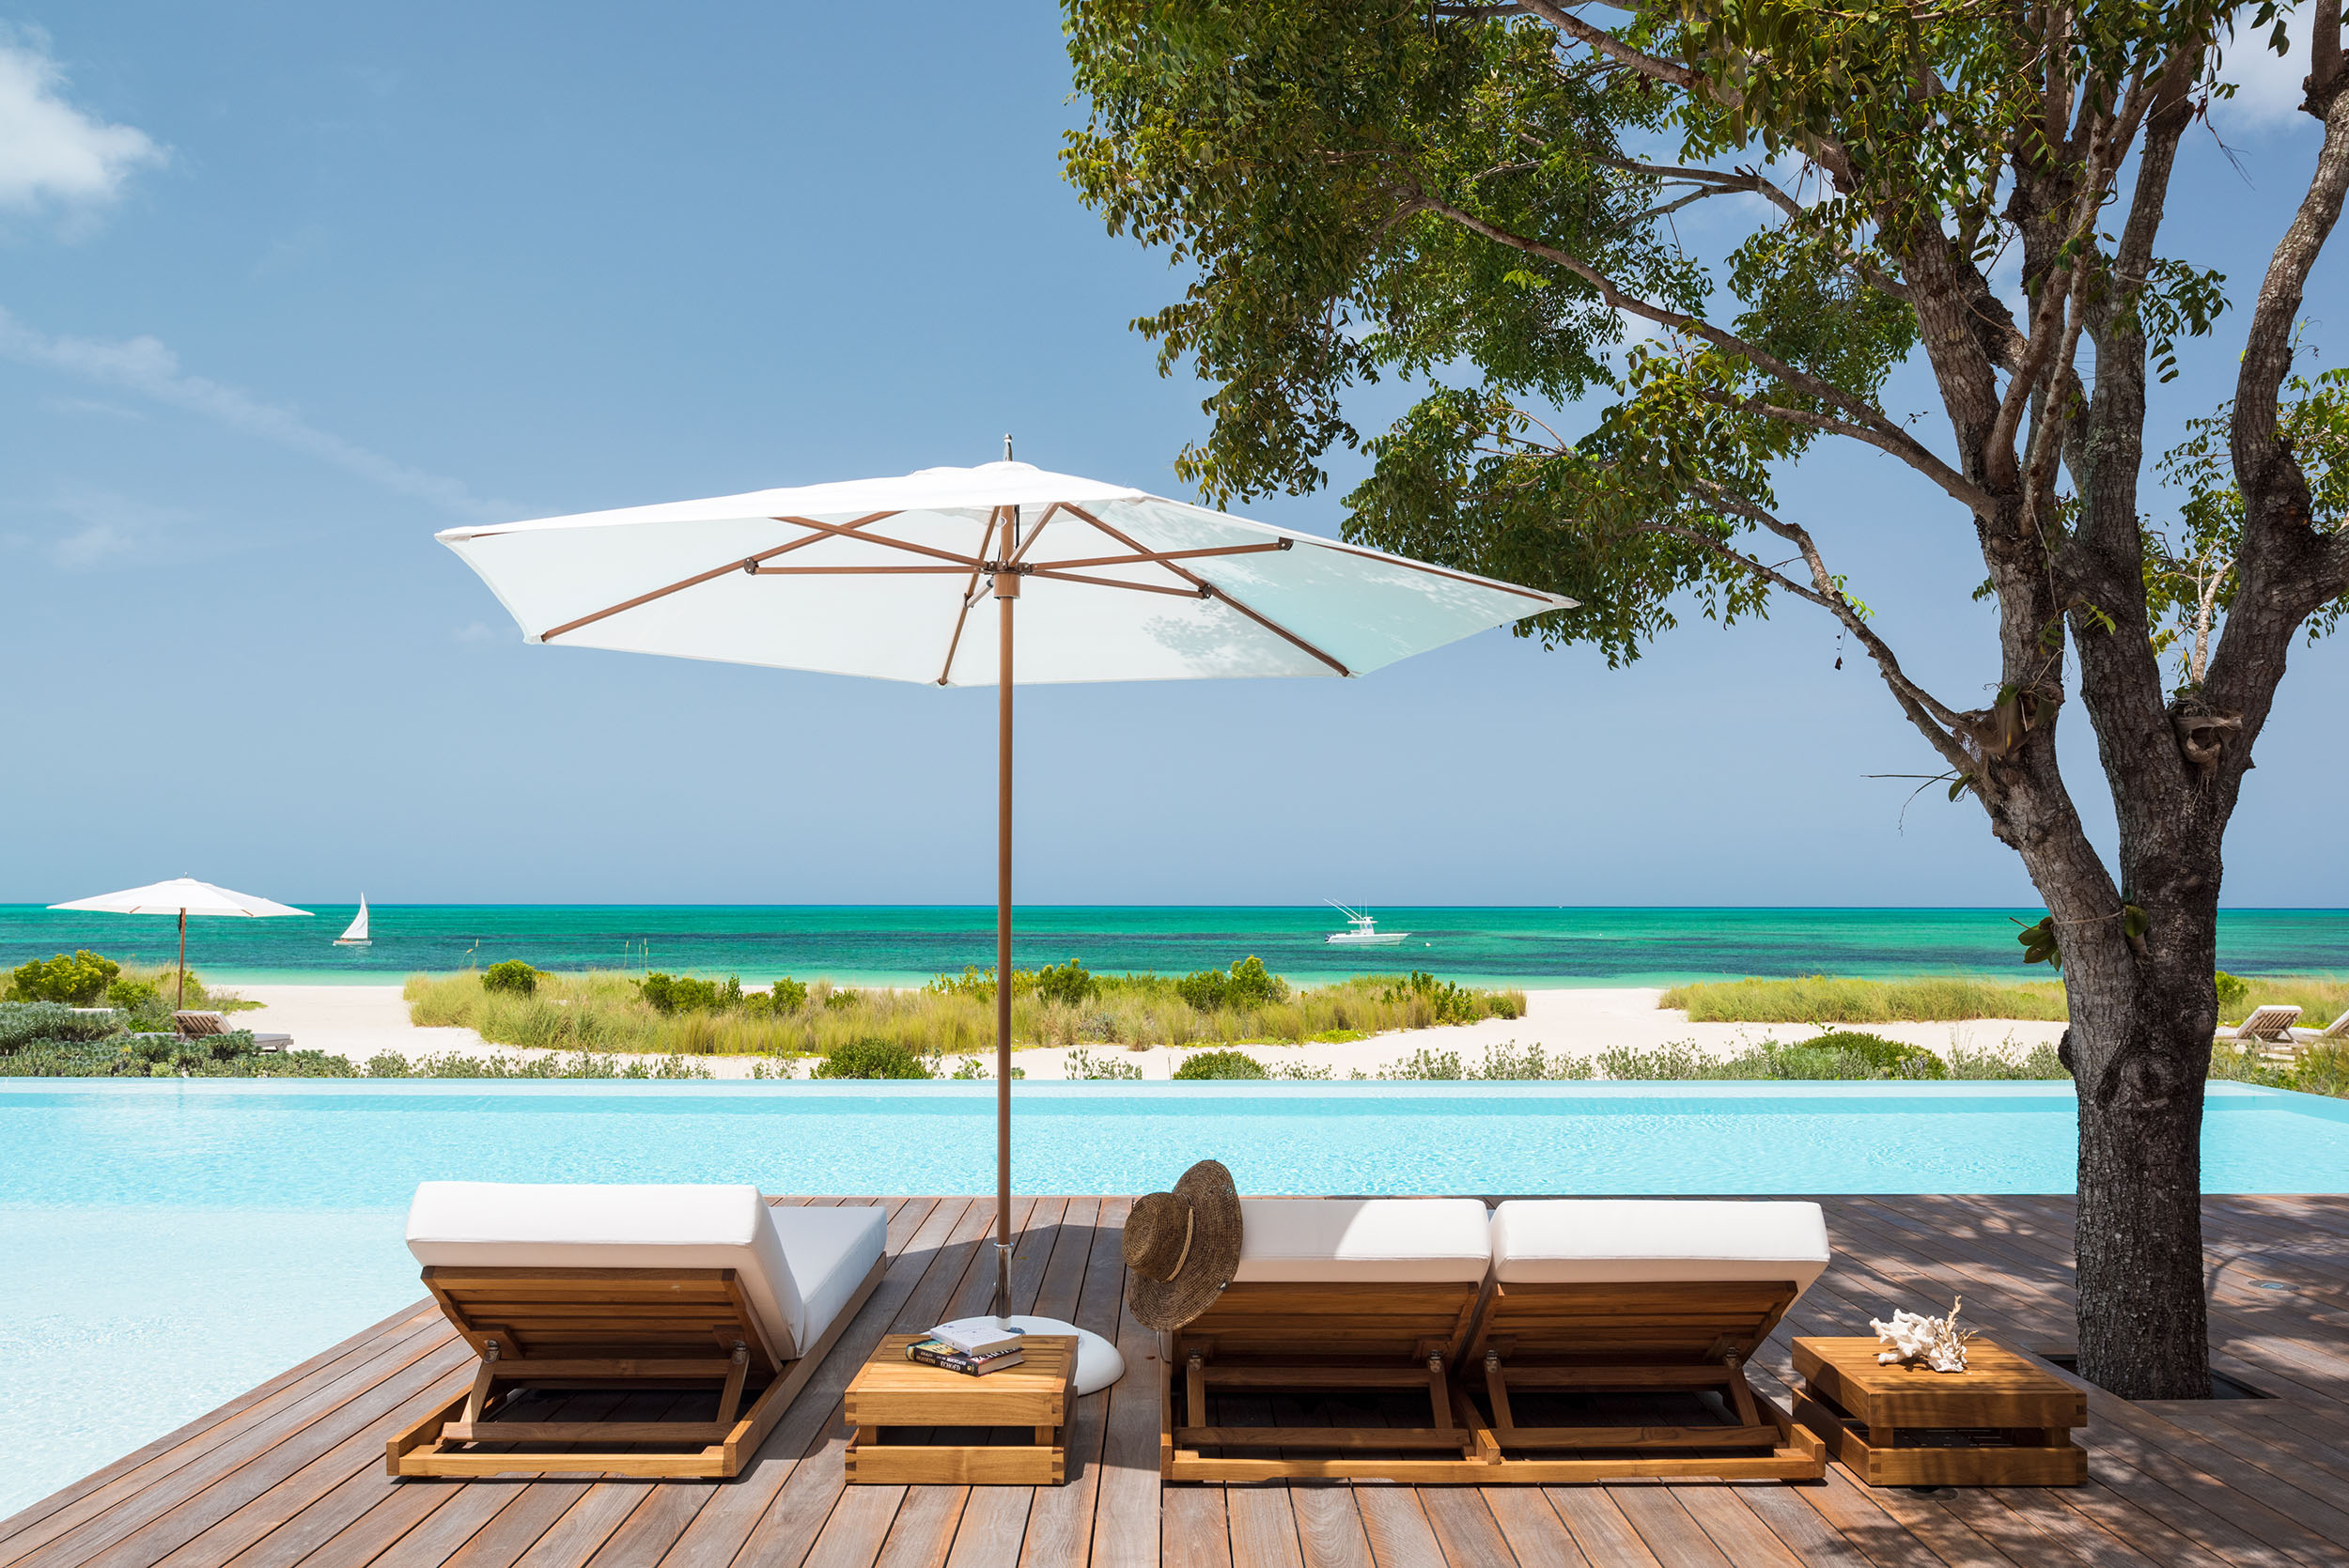 Serenity - view of the pool deck